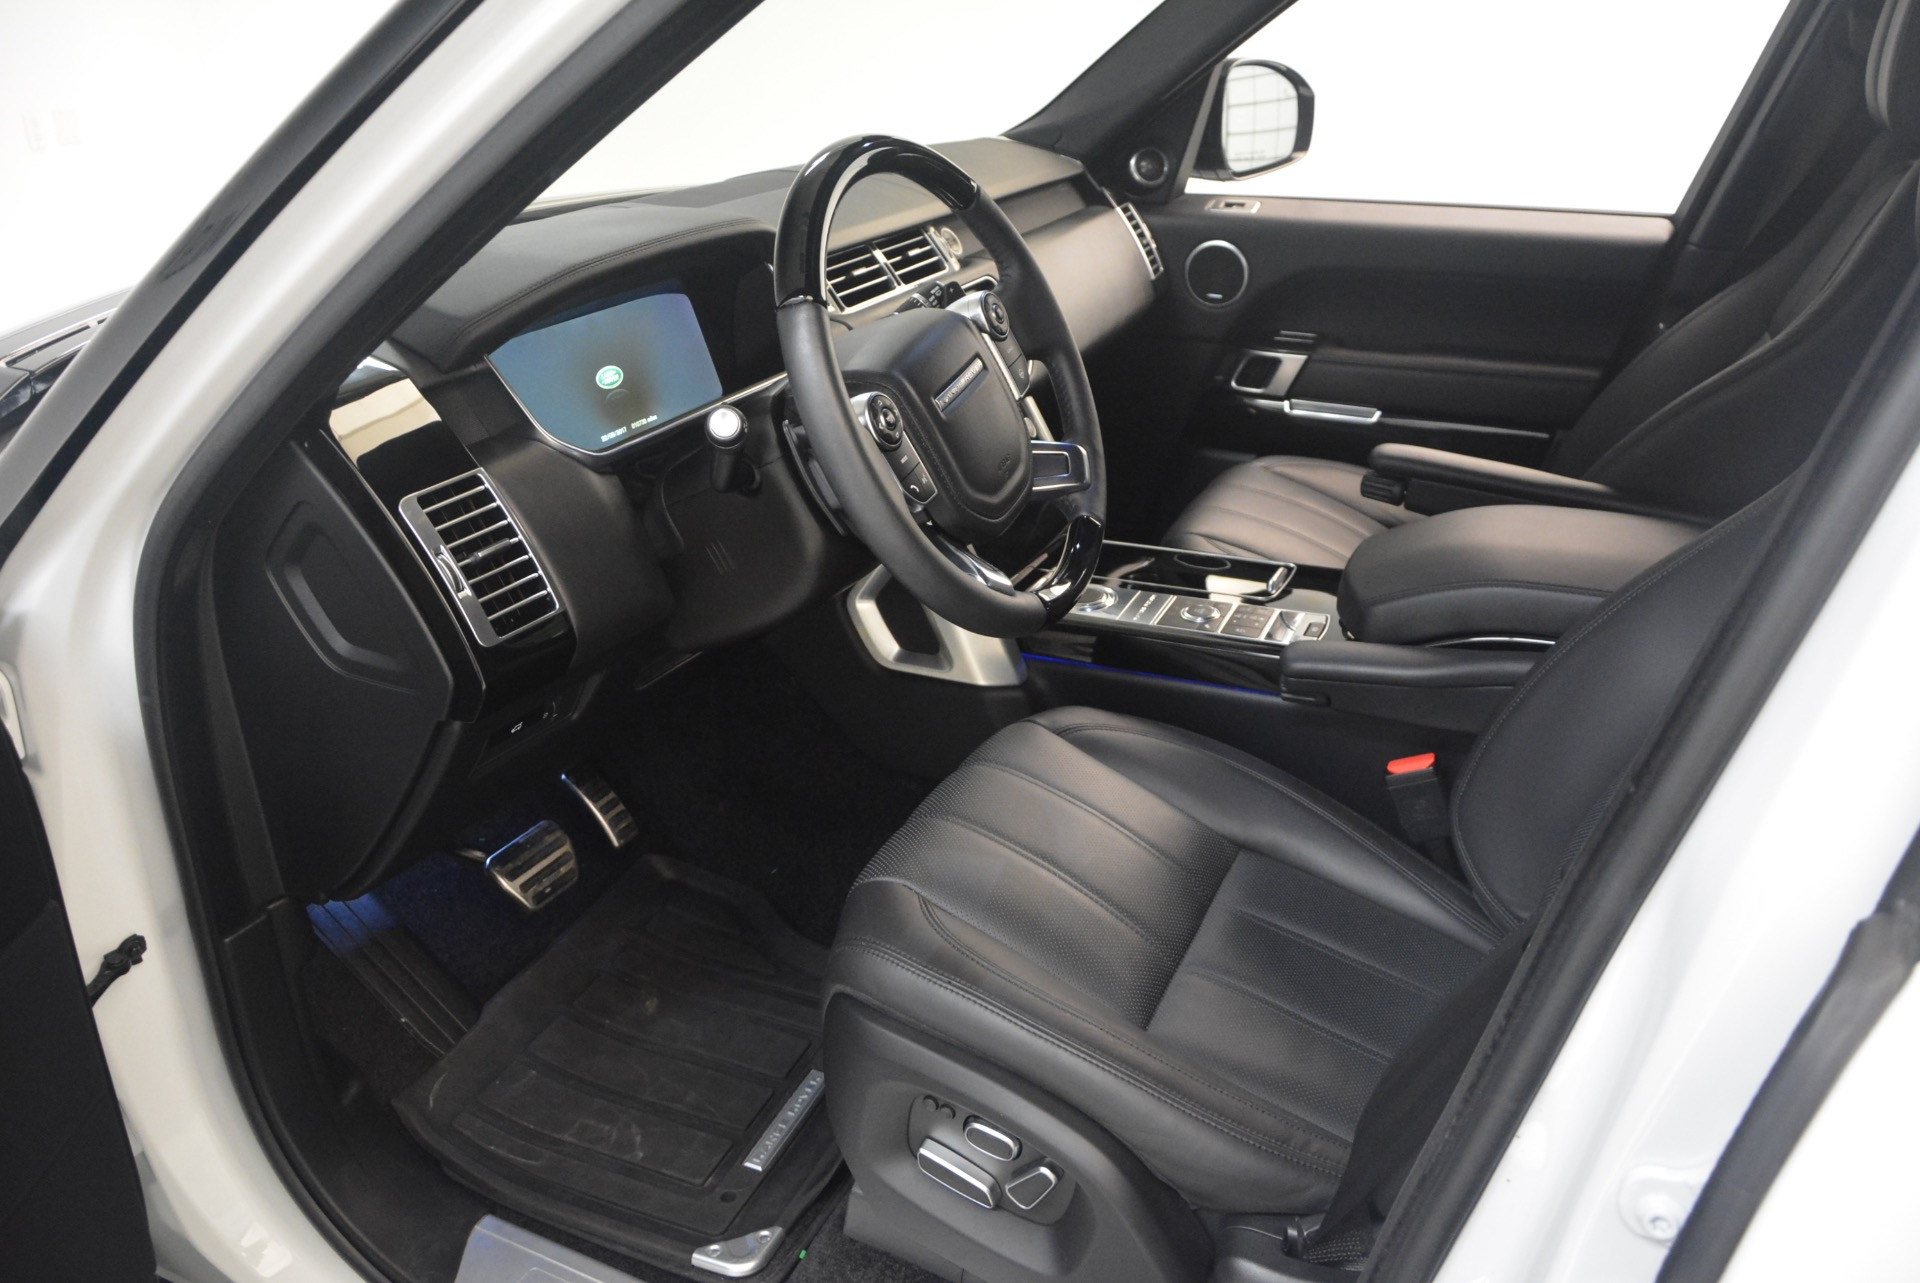 Used 2015 Land Rover Range Rover Supercharged For Sale In Greenwich, CT 1292_p17